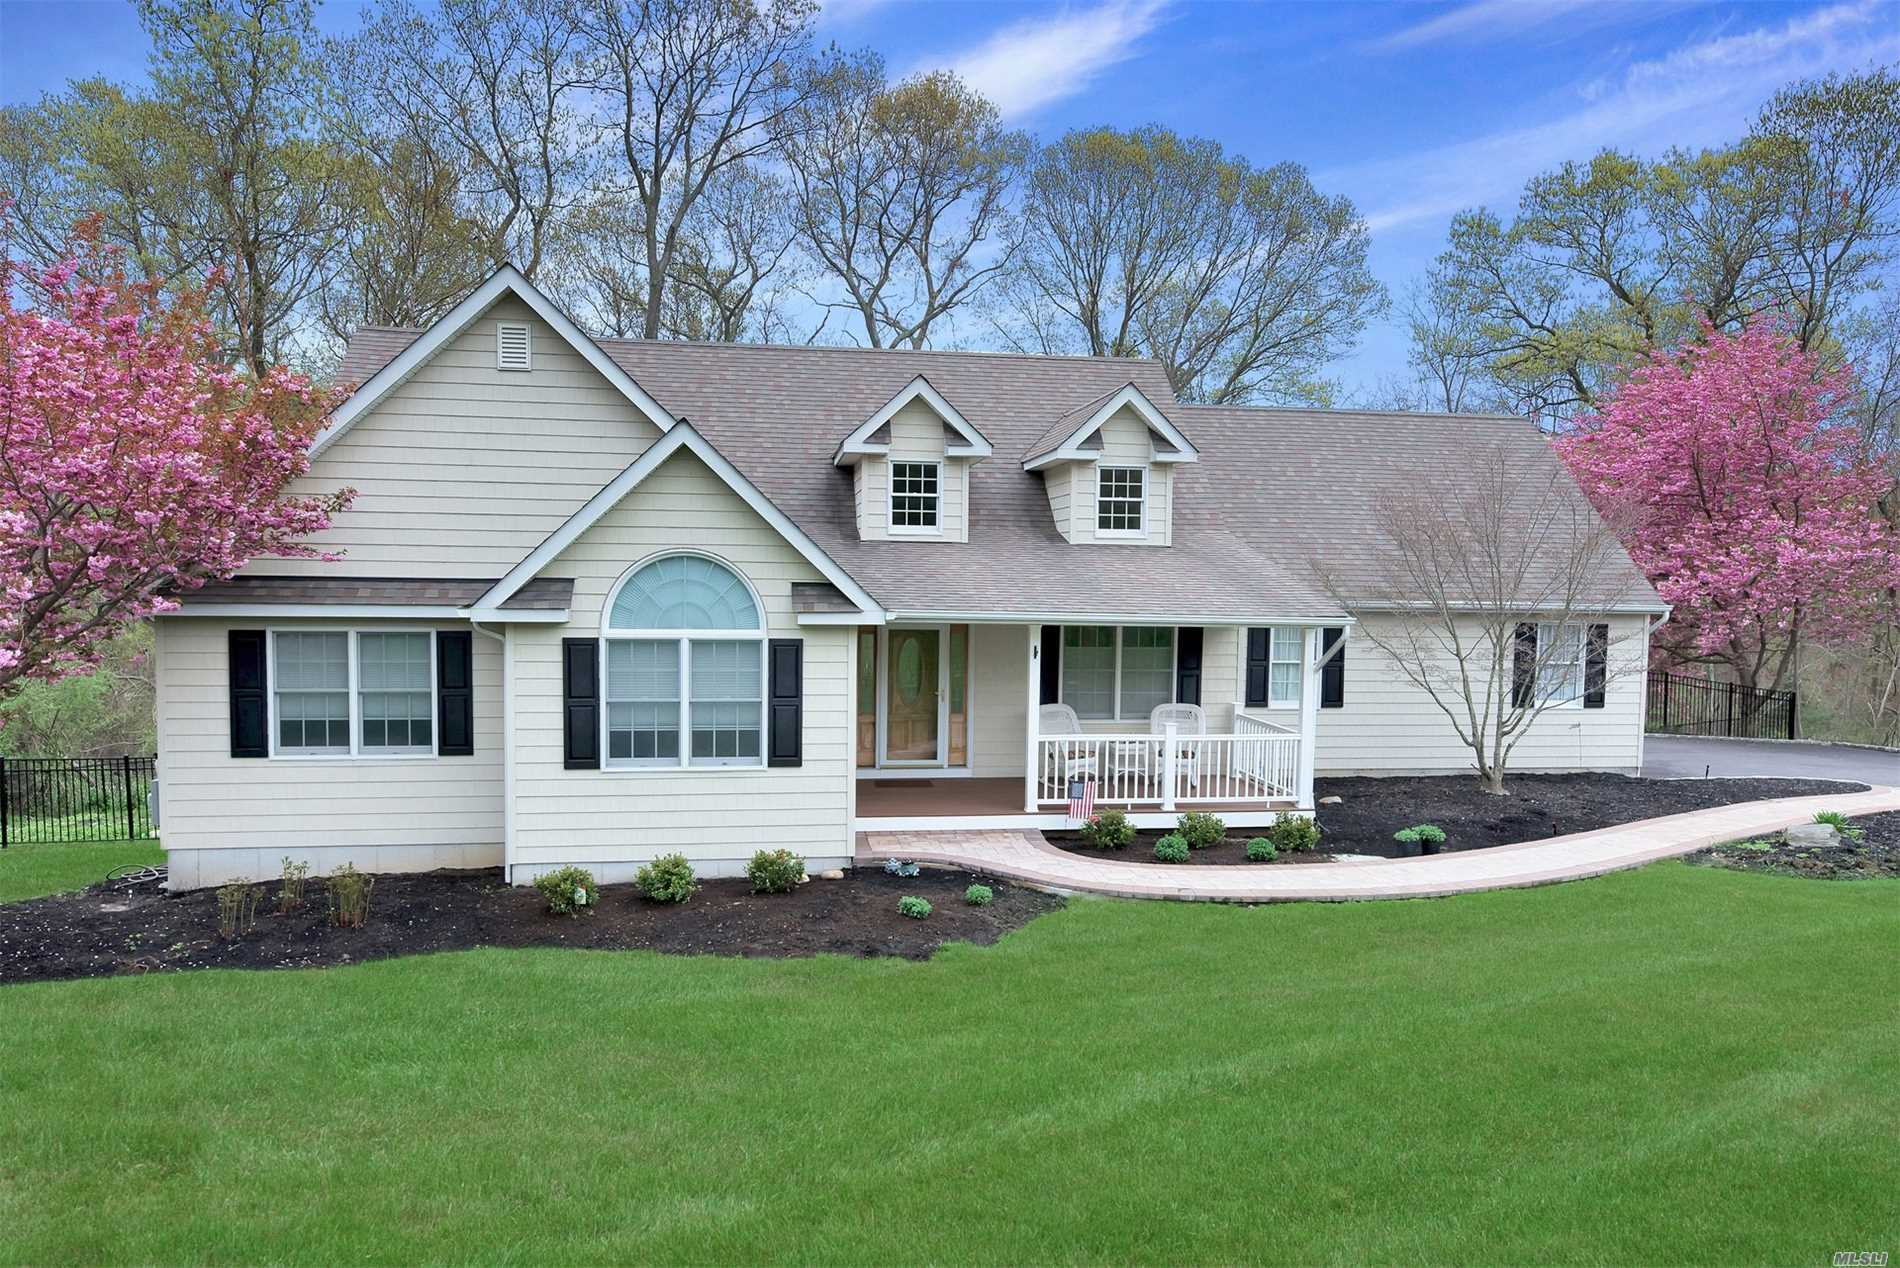 Move Right Into This Spacious Ranch In Desirable Village at Wading River. Open Fl. Plan. Lots of Oak Cabinets, LR w/Fpl, C/A/C, Freshly Painted BRs & Bths. New Carpet, Walk Up Attic Above Garage, New Expanded Driveway & Decorative Pavers. New Trex Porch, New Fence, Cedar Impressions On All Sides. Over 3/4 Acre w/Lazy L Salt Water Pool. New Filter & Pump. SWRSD